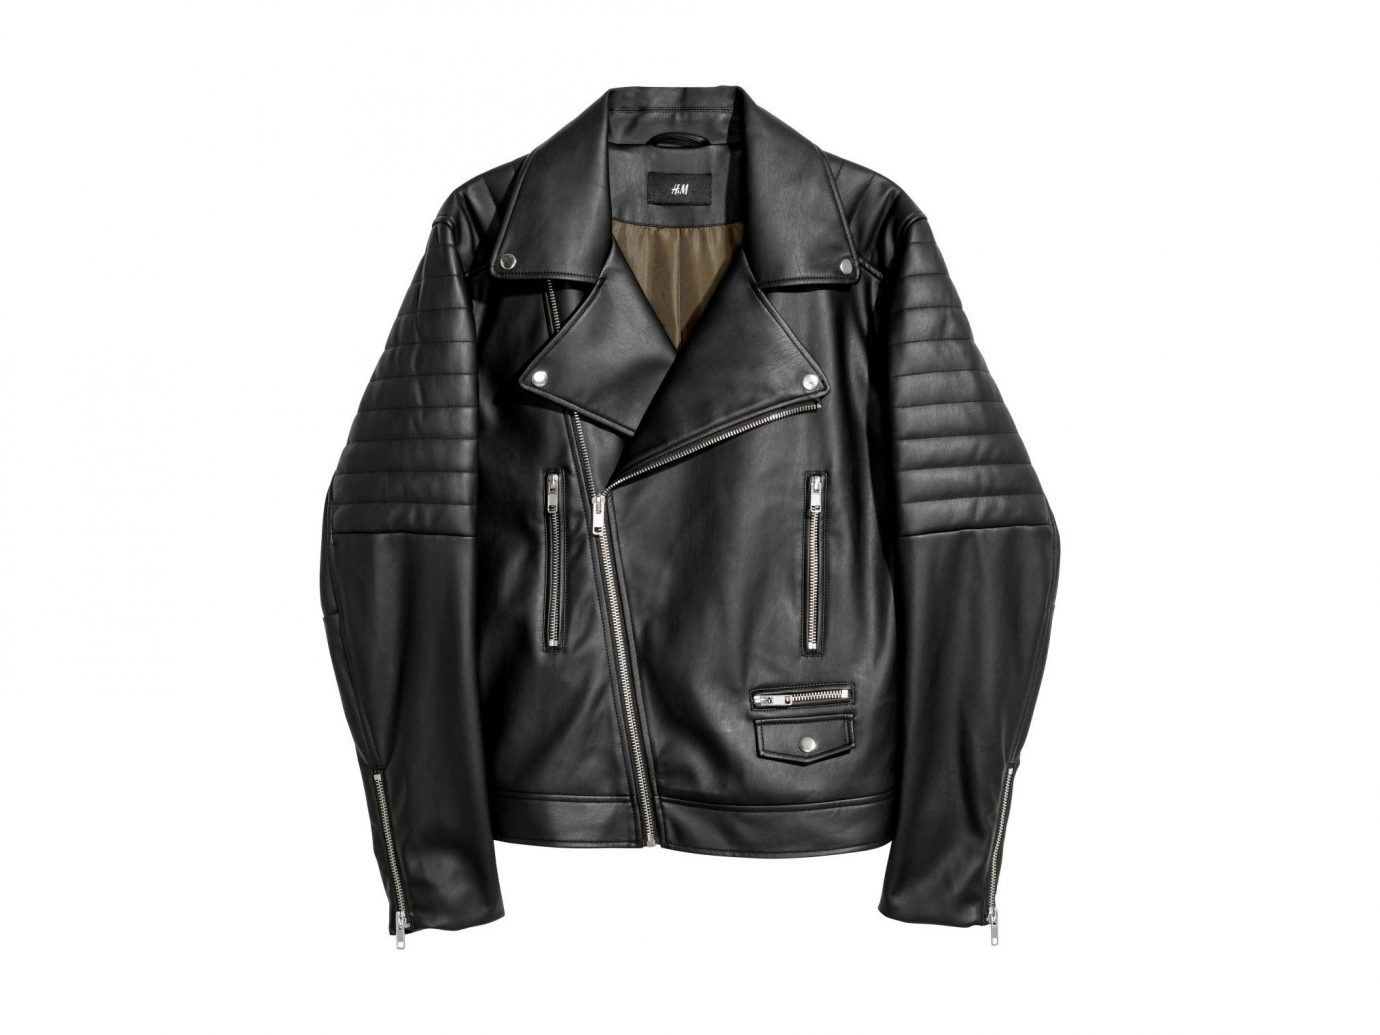 Packing Tips Style + Design Travel Shop jacket black clothing leather jacket leather suit textile product coat pocket material zipper